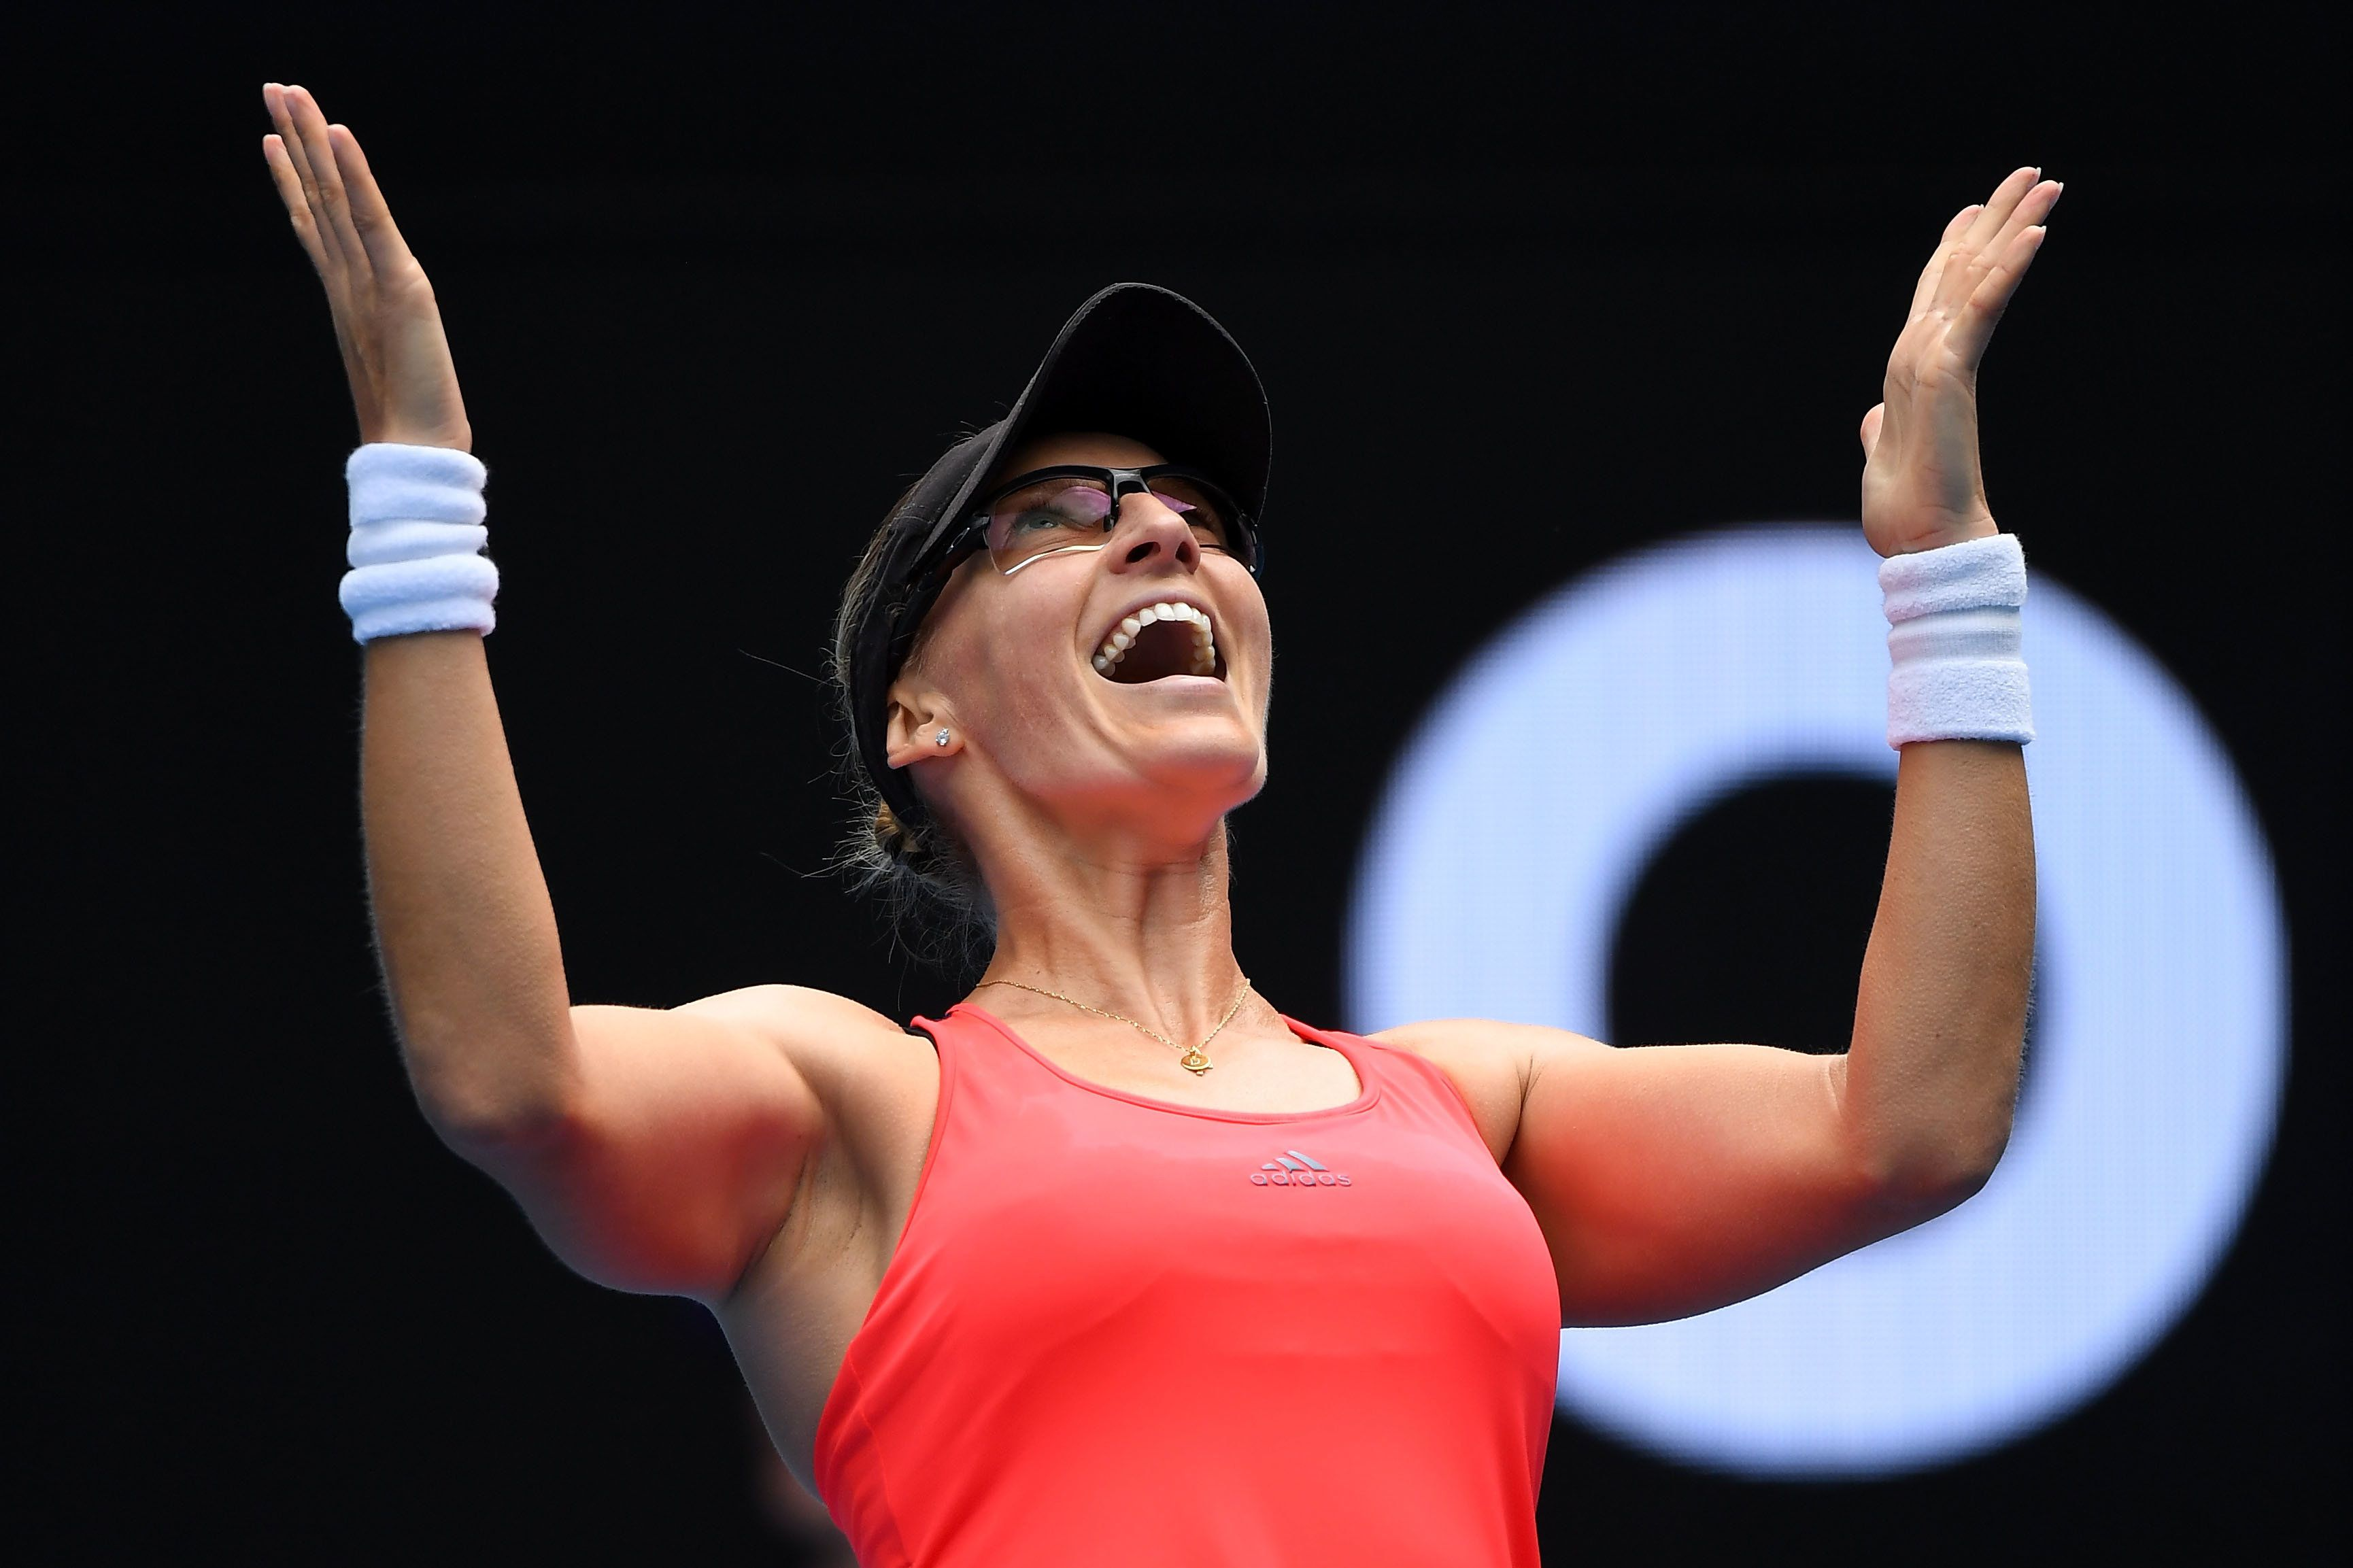 MELBOURNE, AUSTRALIA - JANUARY 23:  Mirjana Lucic-Baroni of Croatia celebrates winning her fourth round match against Jennifer Brady of the United States on day eight of the 2017 Australian Open at Melbourne Park on January 23, 2017 in Melbourne, Australia.  (Photo by Quinn Rooney/Getty Images)